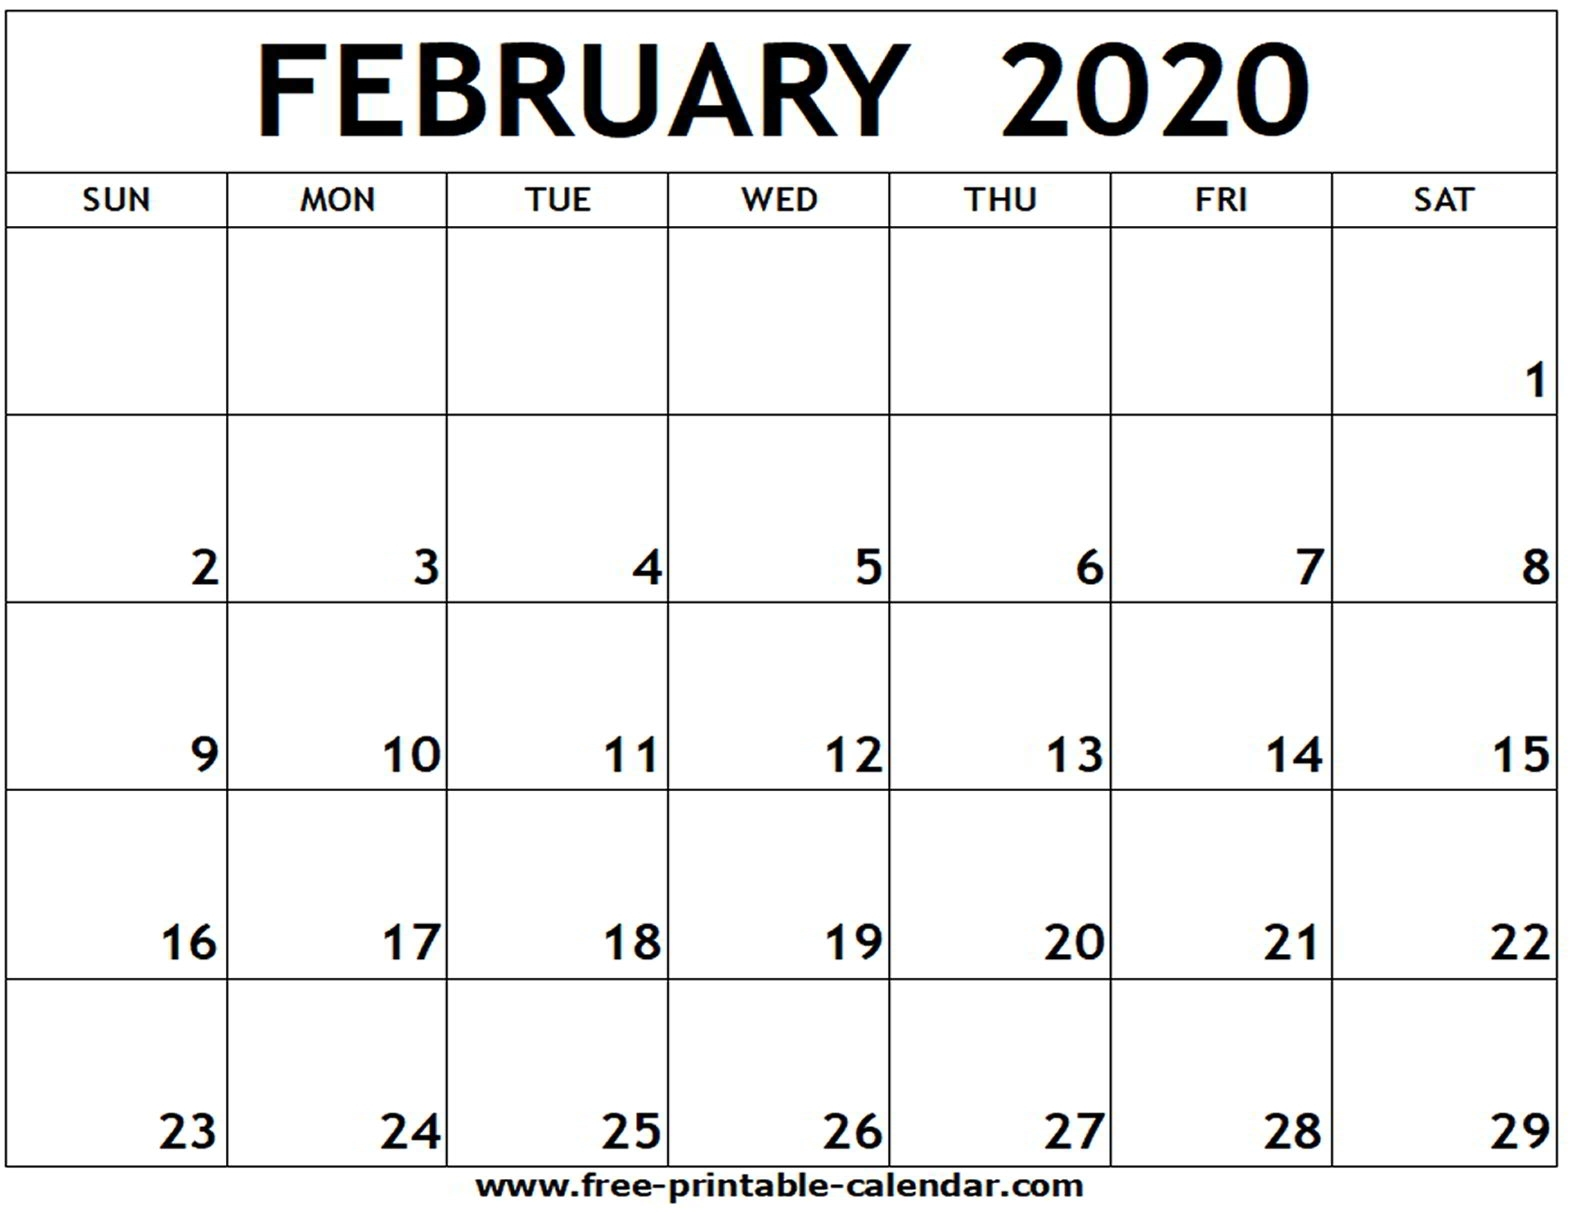 February 2020 Printable Calendar - Free-Printable-Calendar intended for February 2020 Calender That I Can Fill In